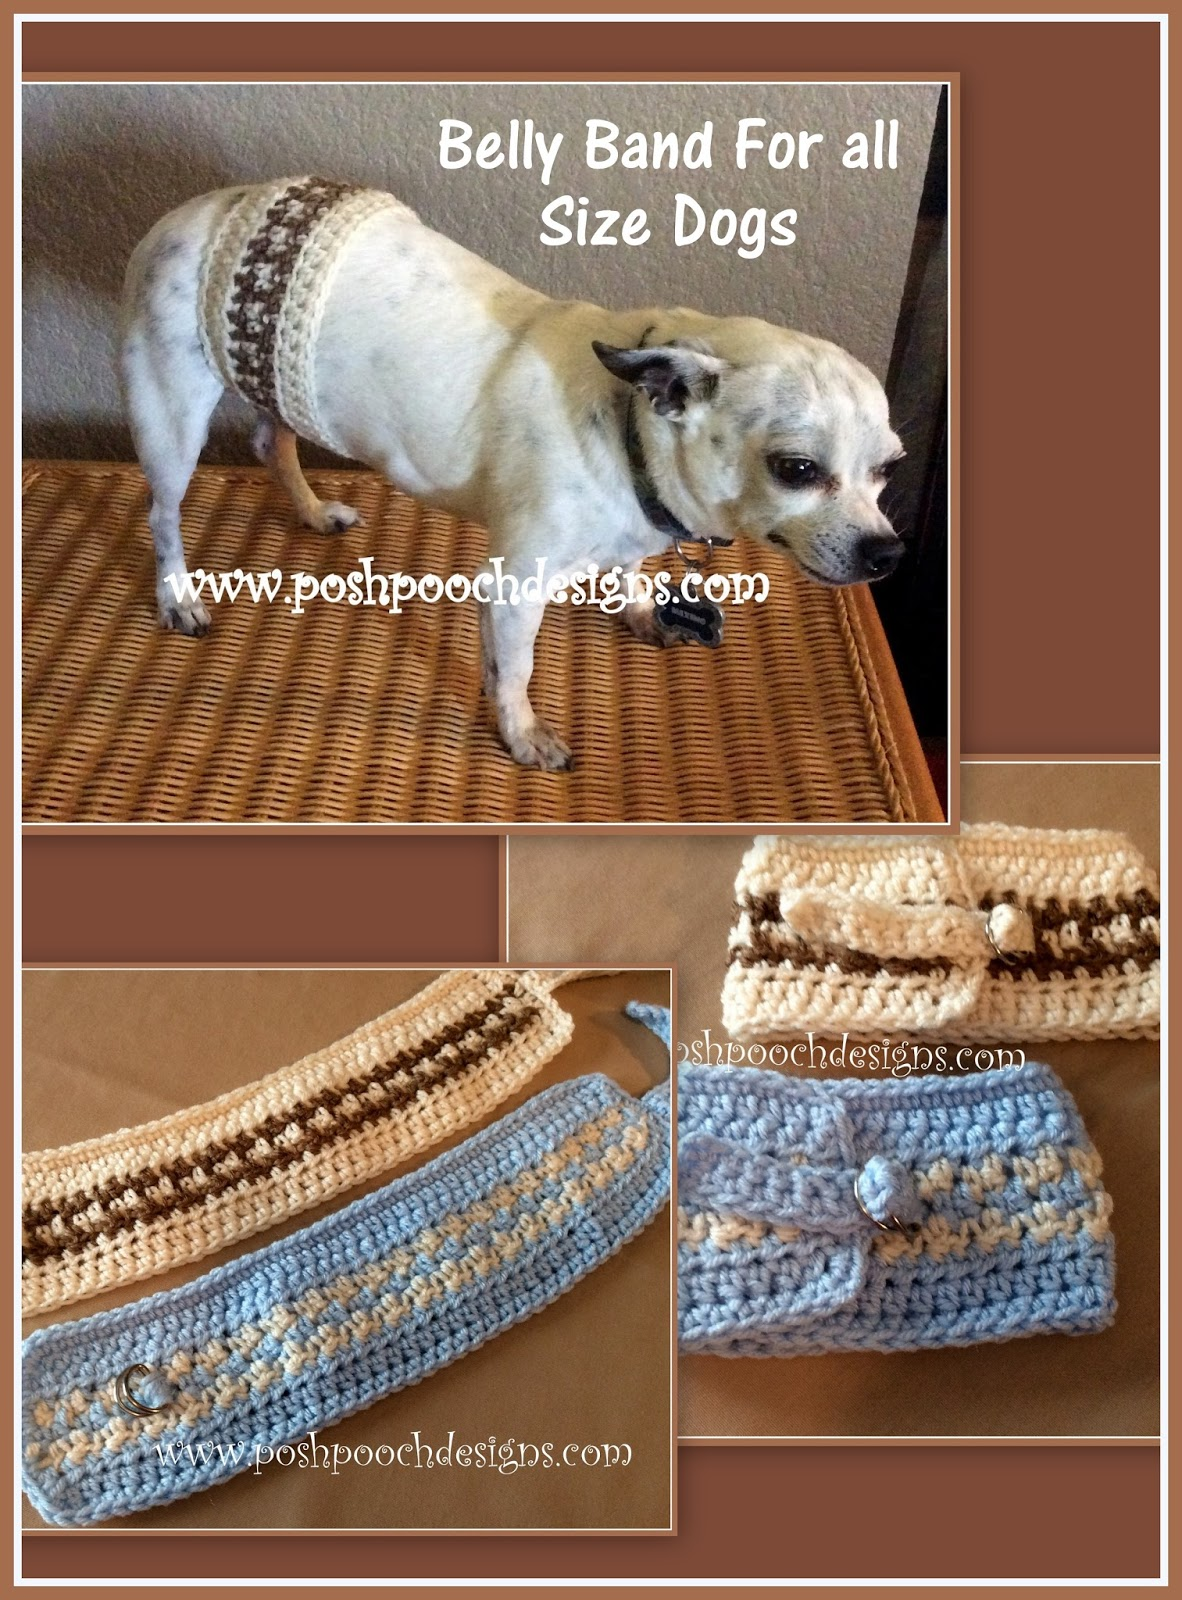 Posh Pooch Designs Dog Clothes Belly Band For All Size